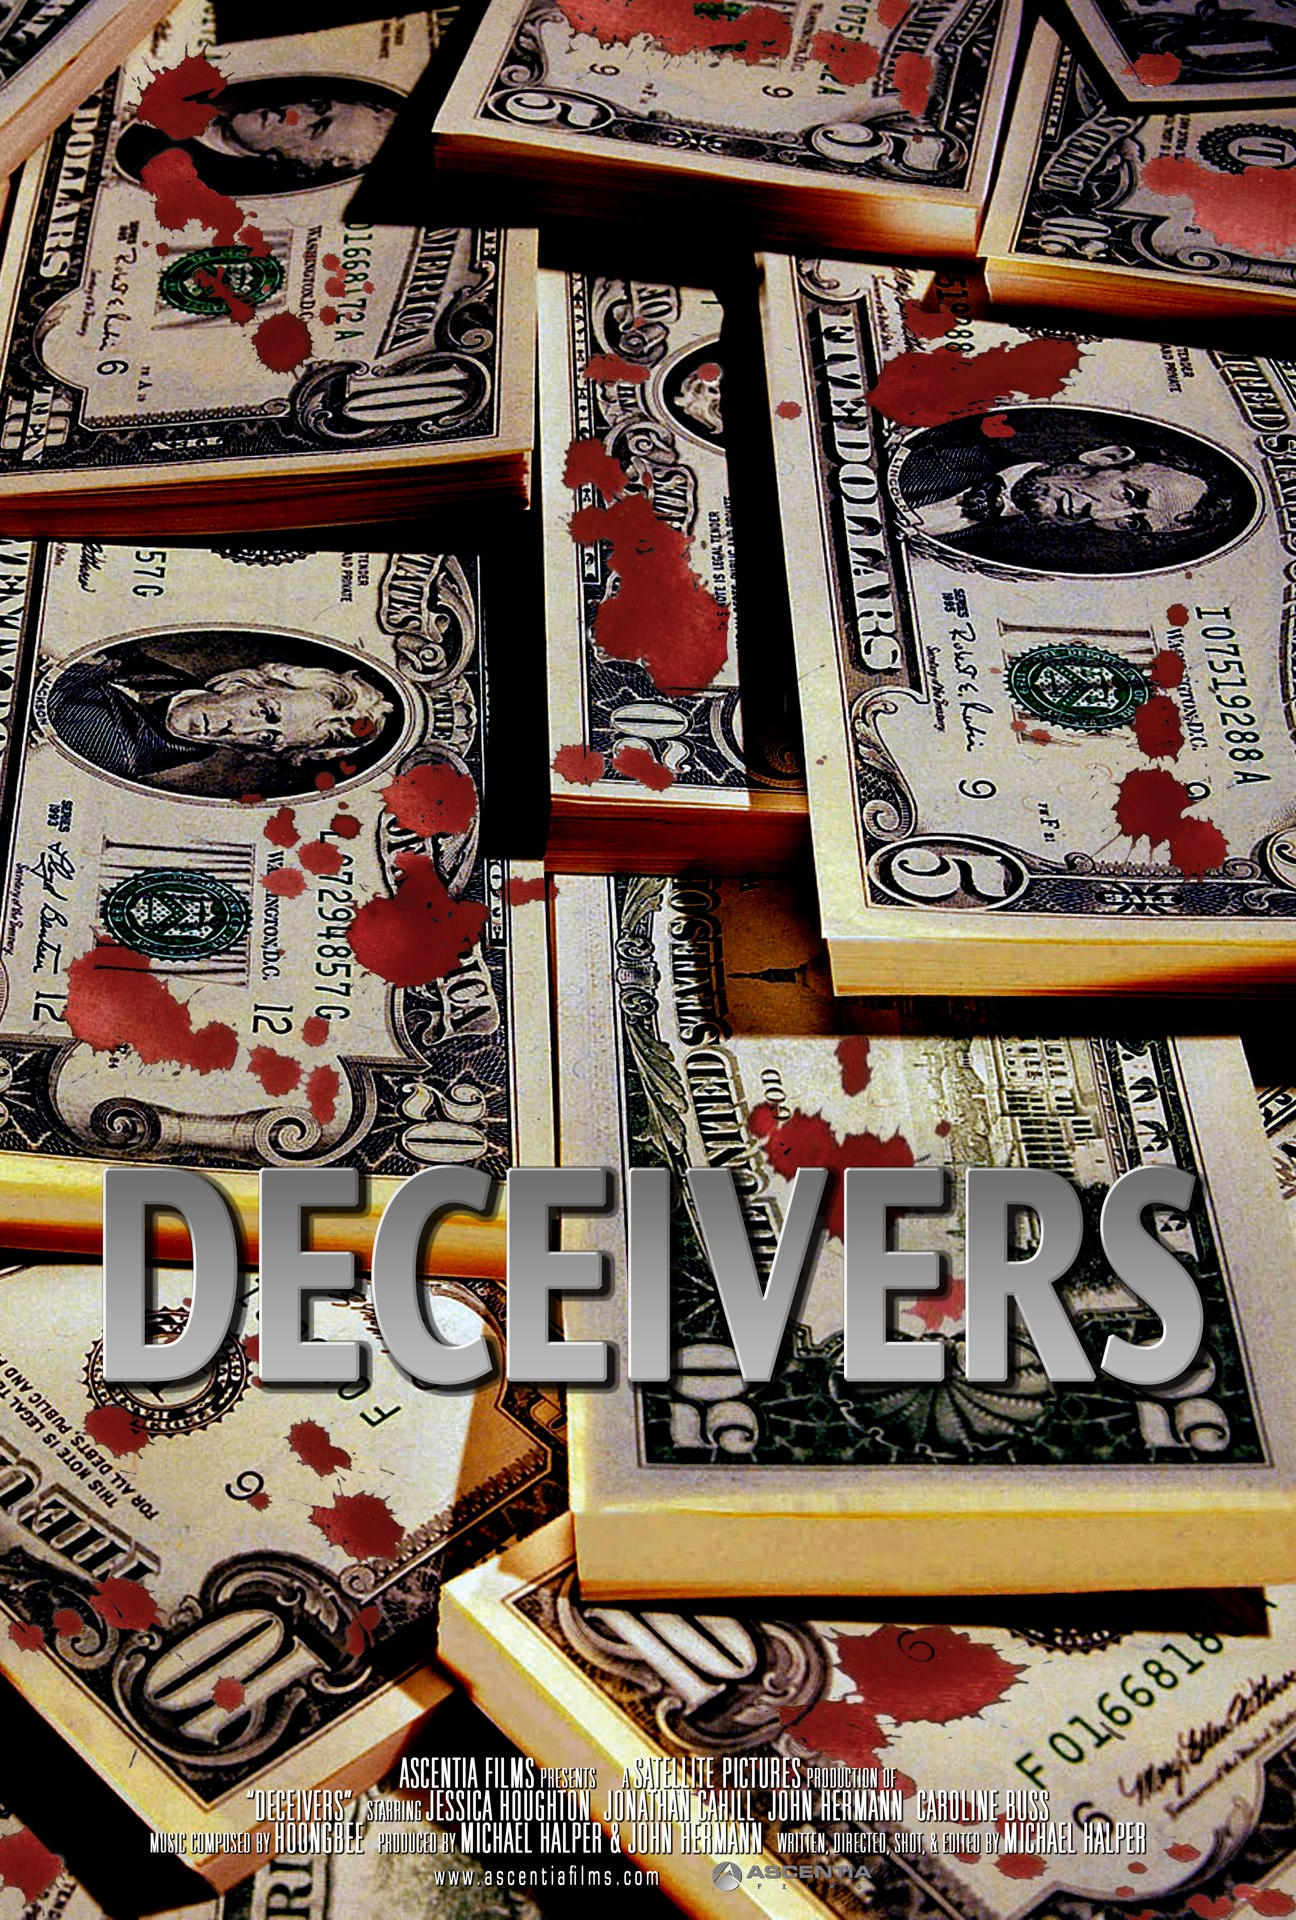 Deceivers poster